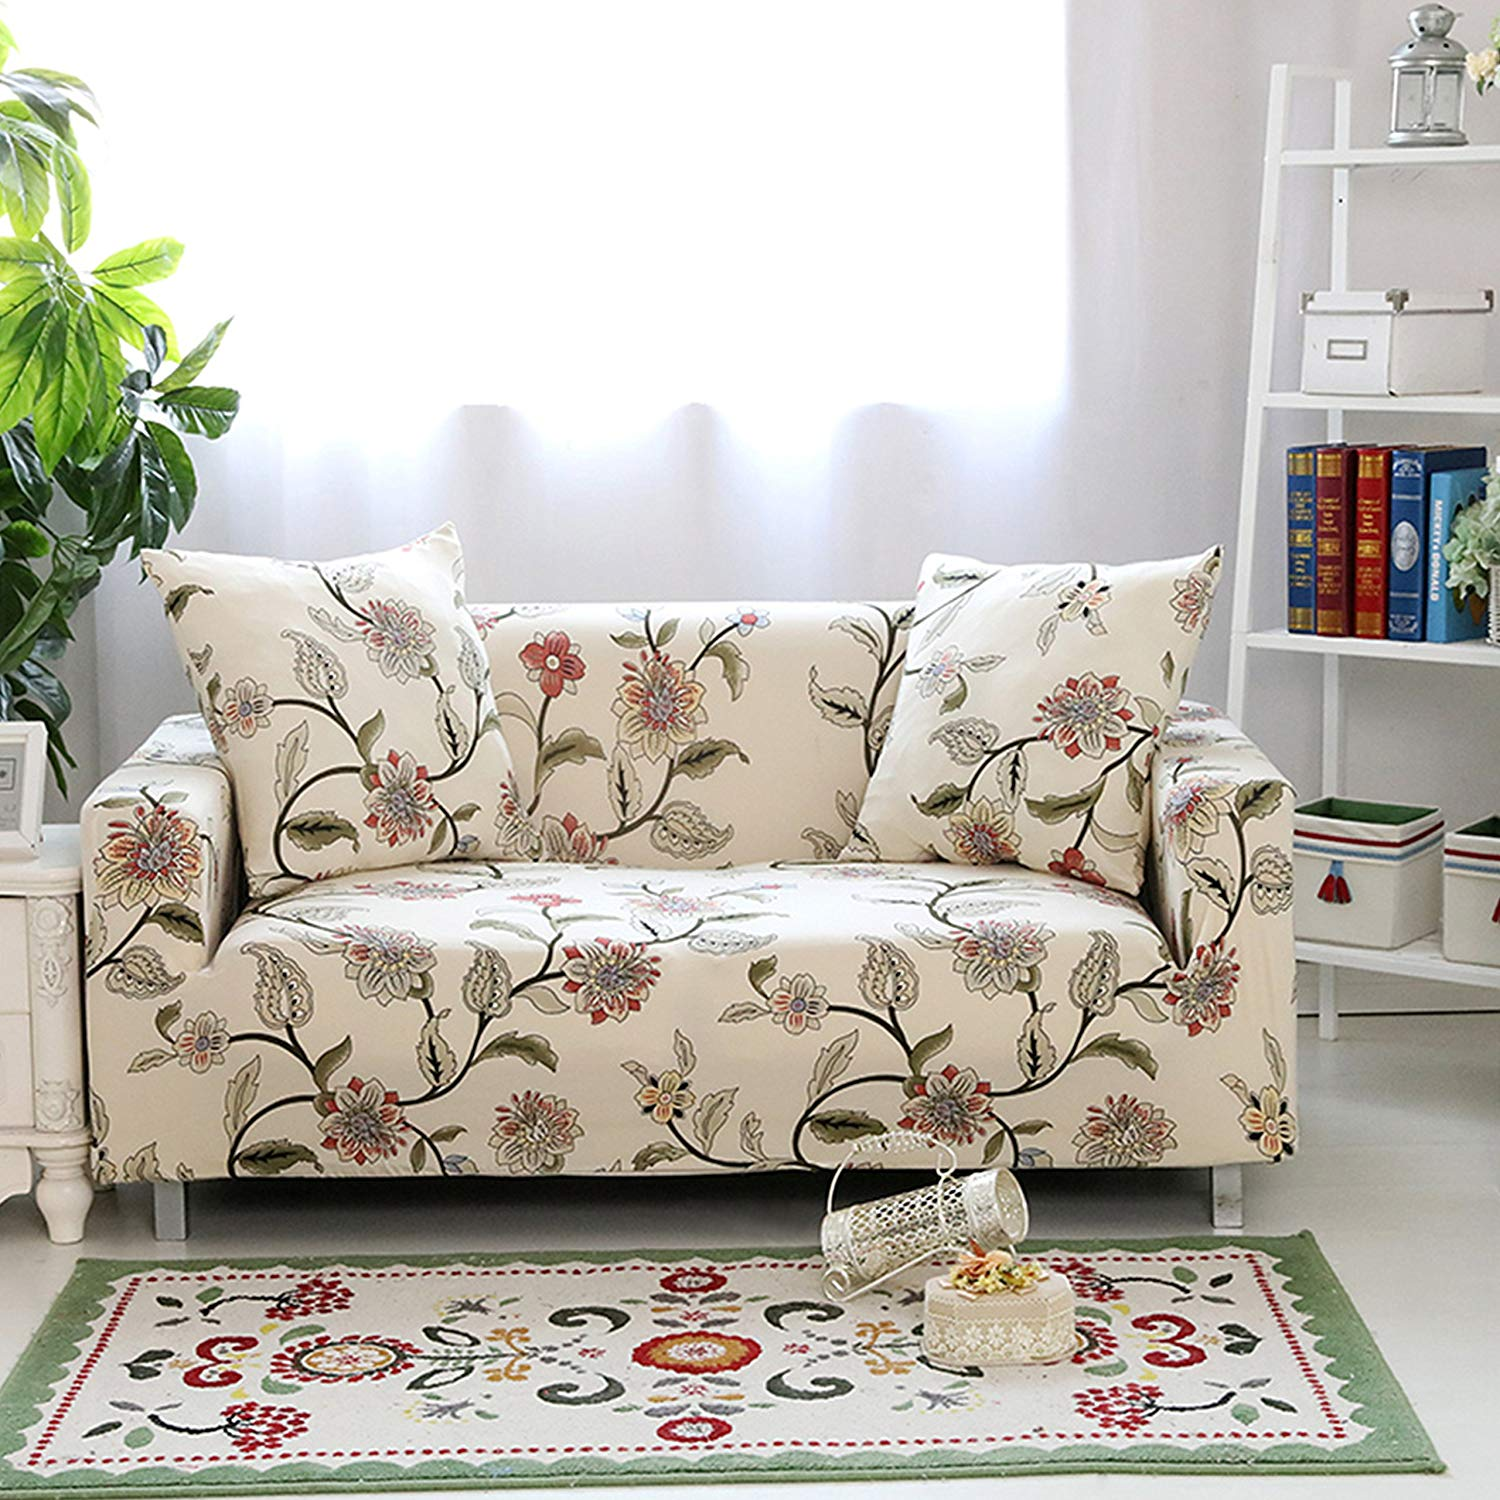 Traveller Location: Lamberia Printed Sofa Cover Stretch Couch Cover Sofa Slipcovers  for 3 Cushion Couch with One Free Pillow Case (Blooming Flower, Sofa 3  Seater):